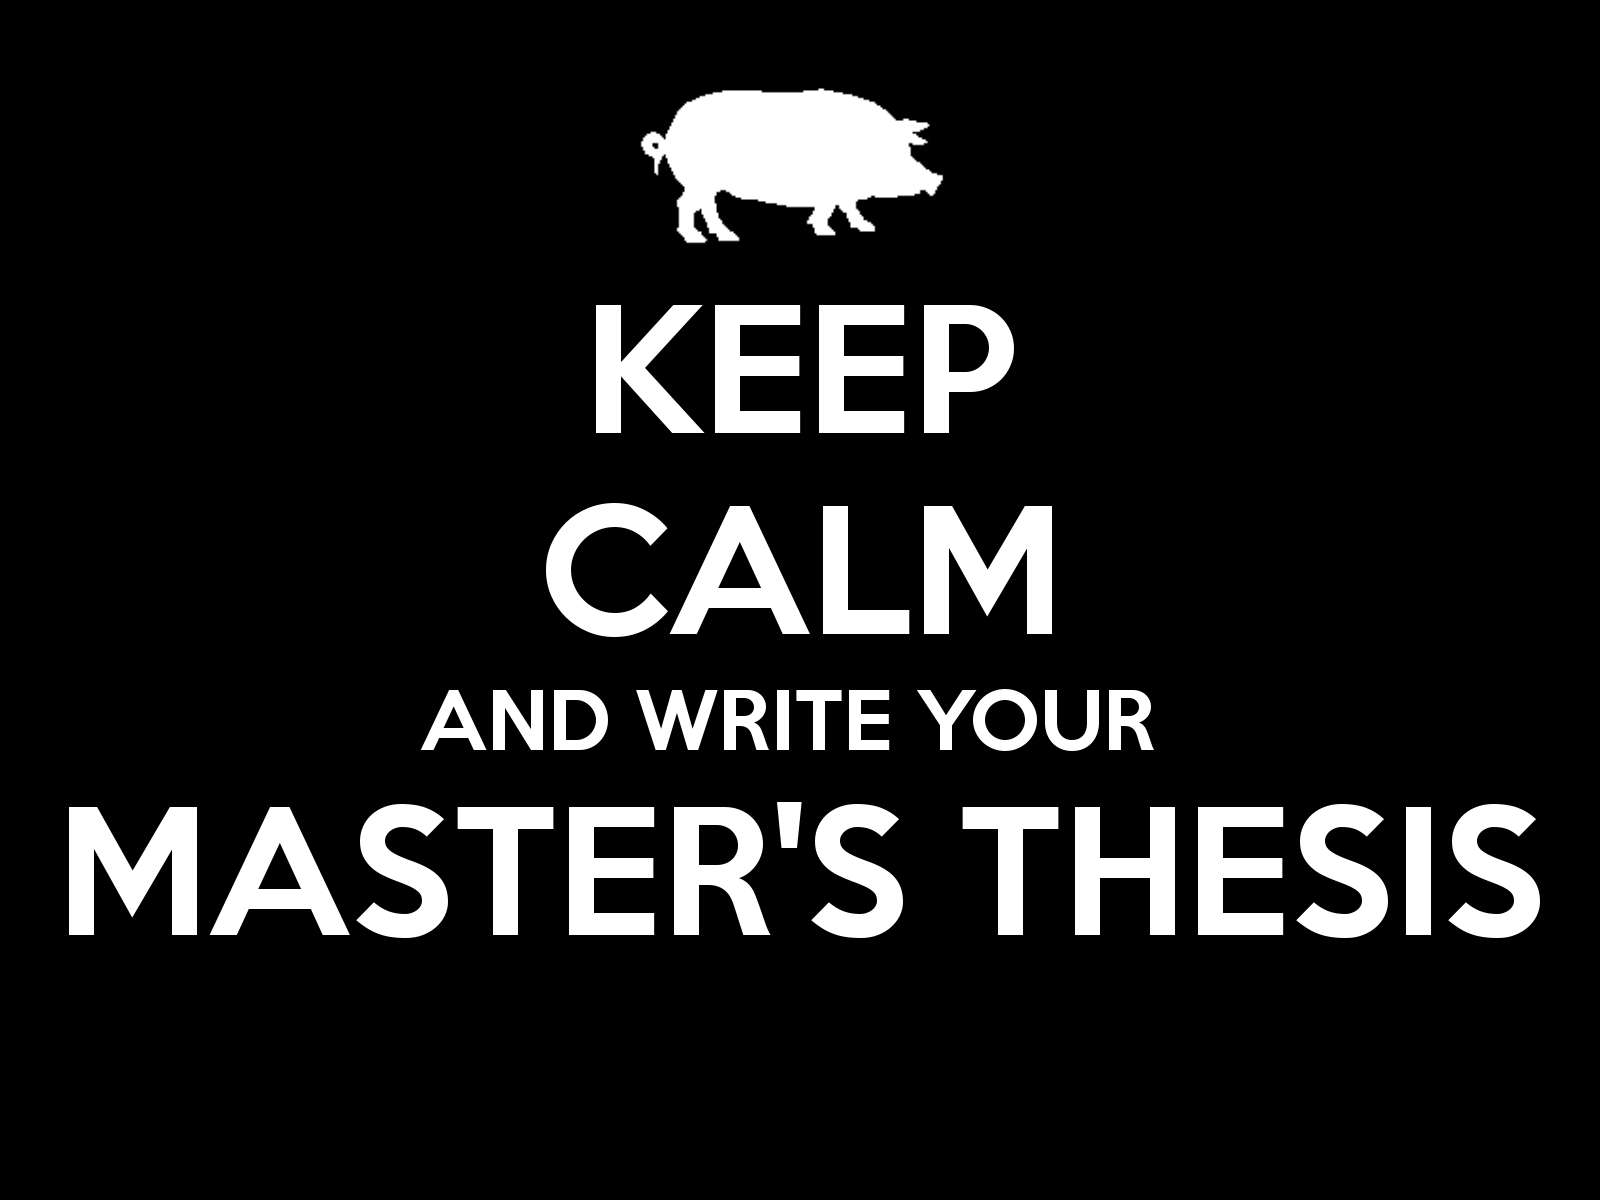 Master thesis lyrics